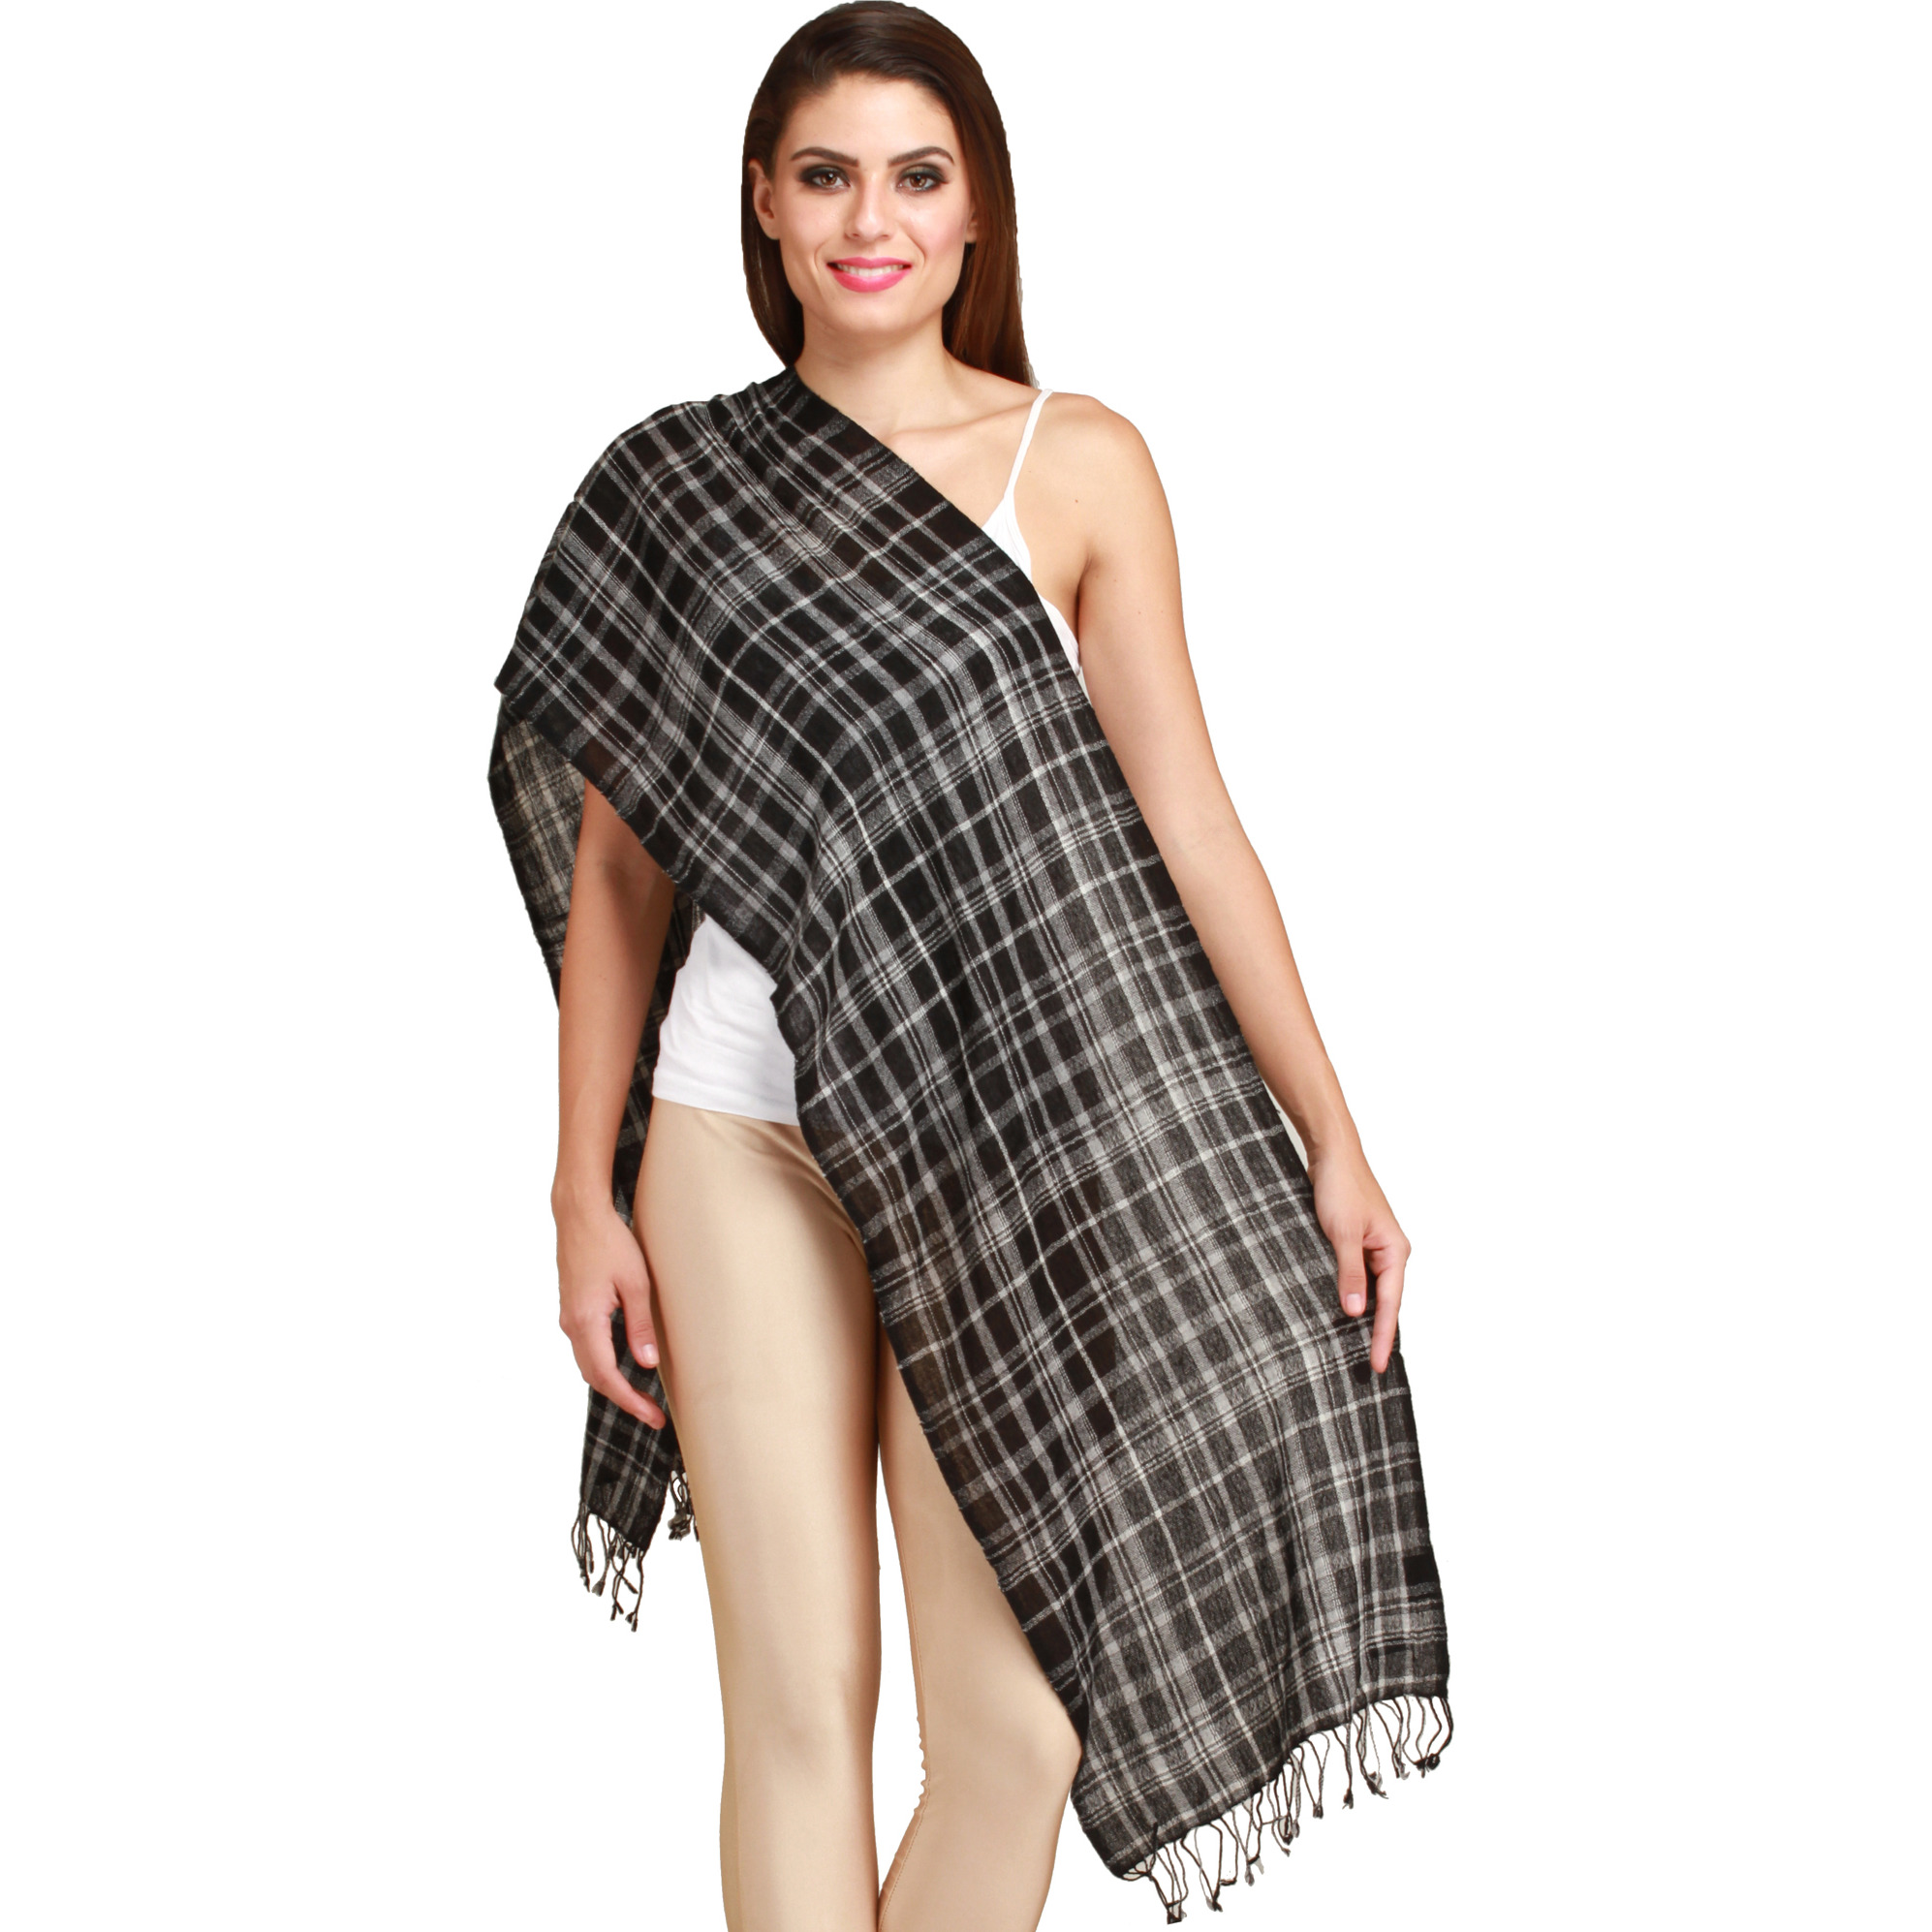 Jet-Black Cashmere Scarf from Nepal with Woven Checks